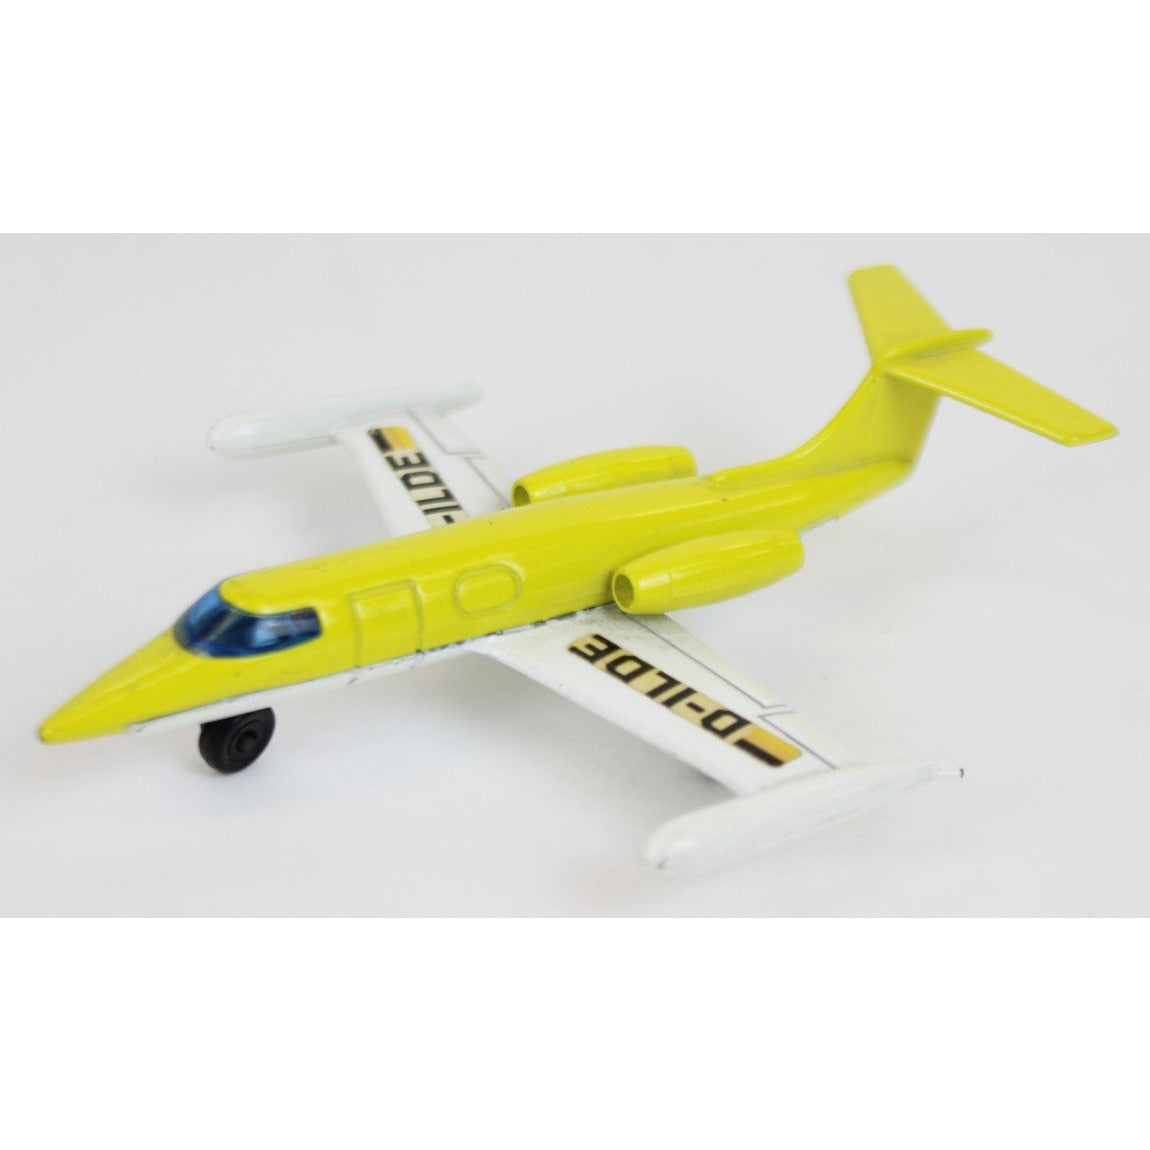 Matchbook LearJet Metal Toy